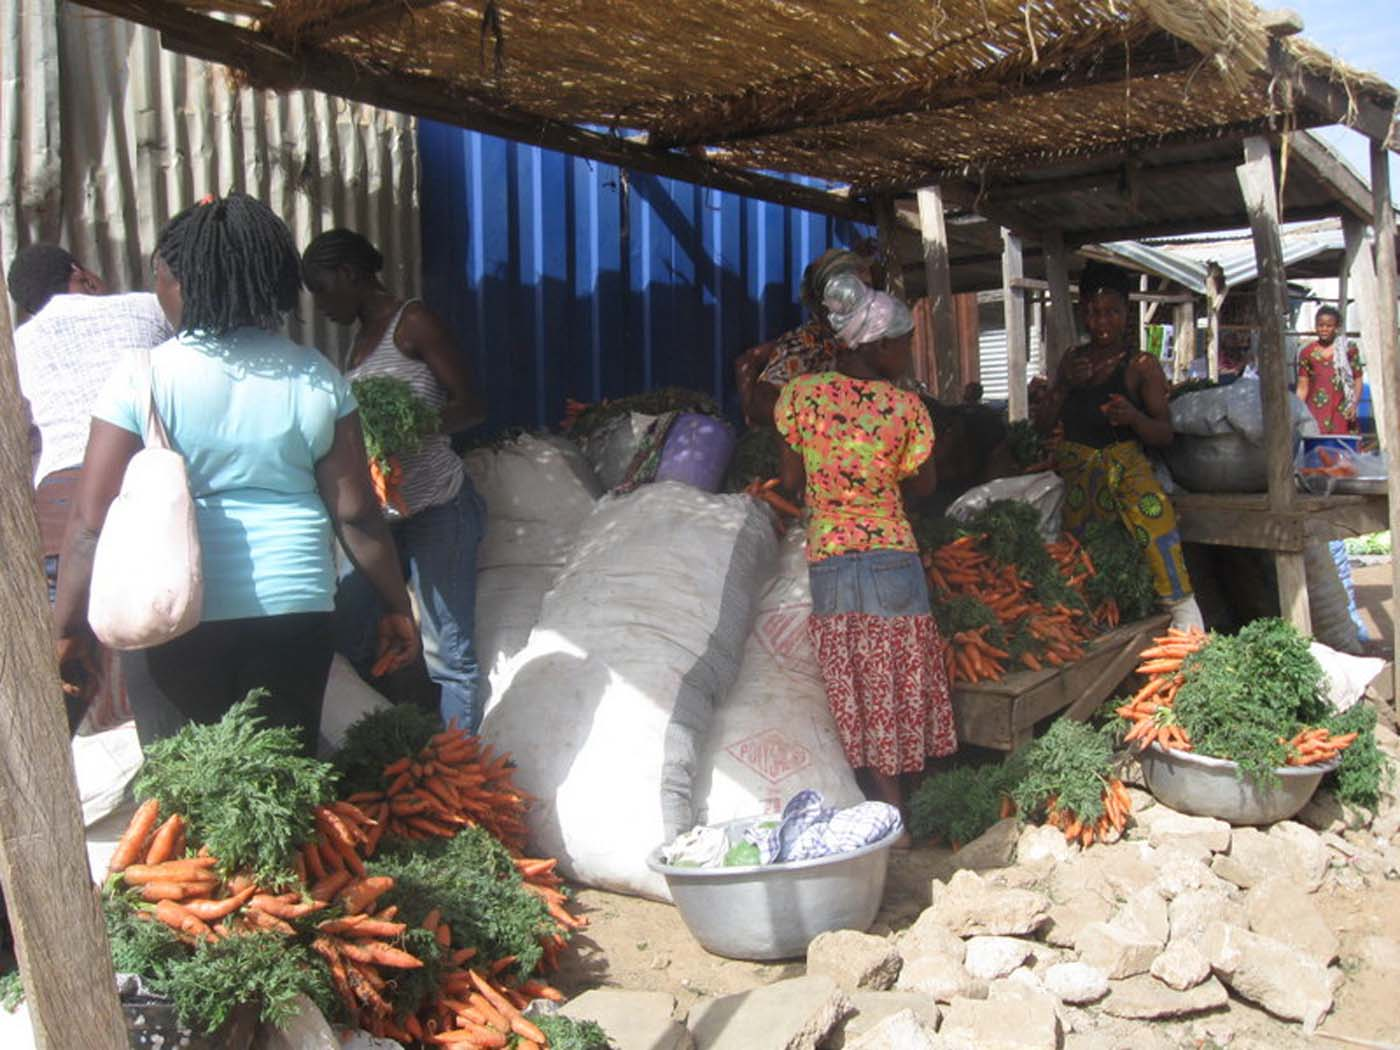 Women selling carrots and other wares